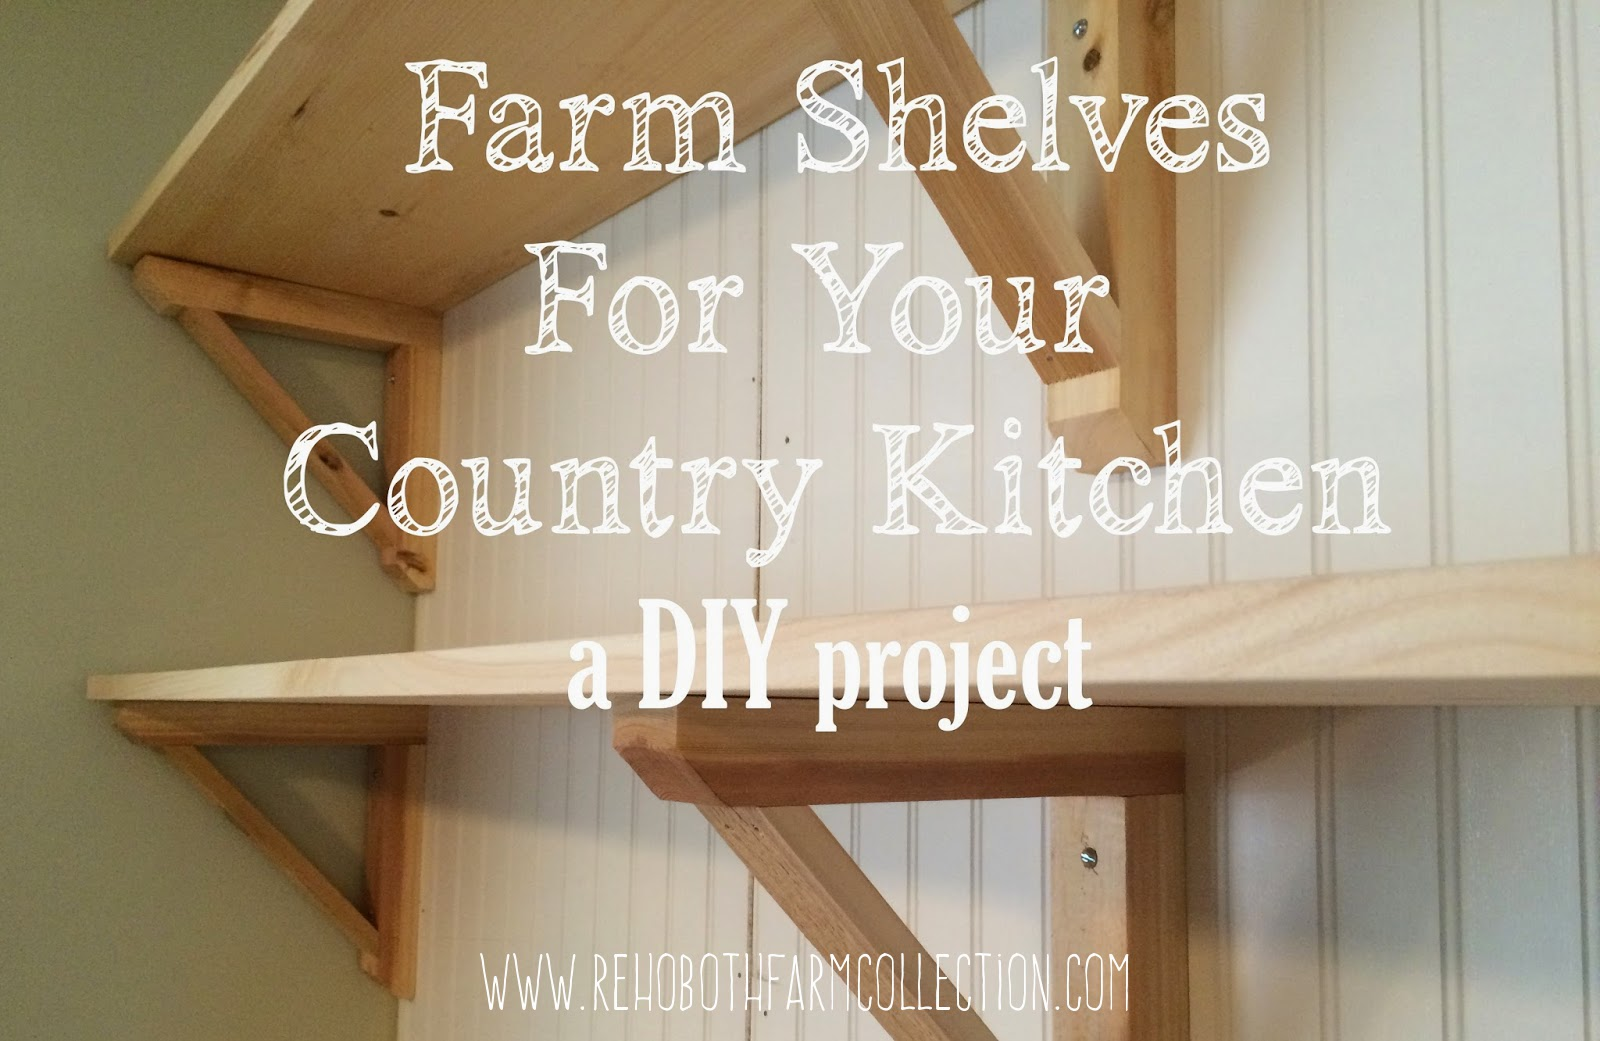 Country Kitchen Shelves Rehoboth Farm Farm Shelves For Your Country Kitchen A Diy Project